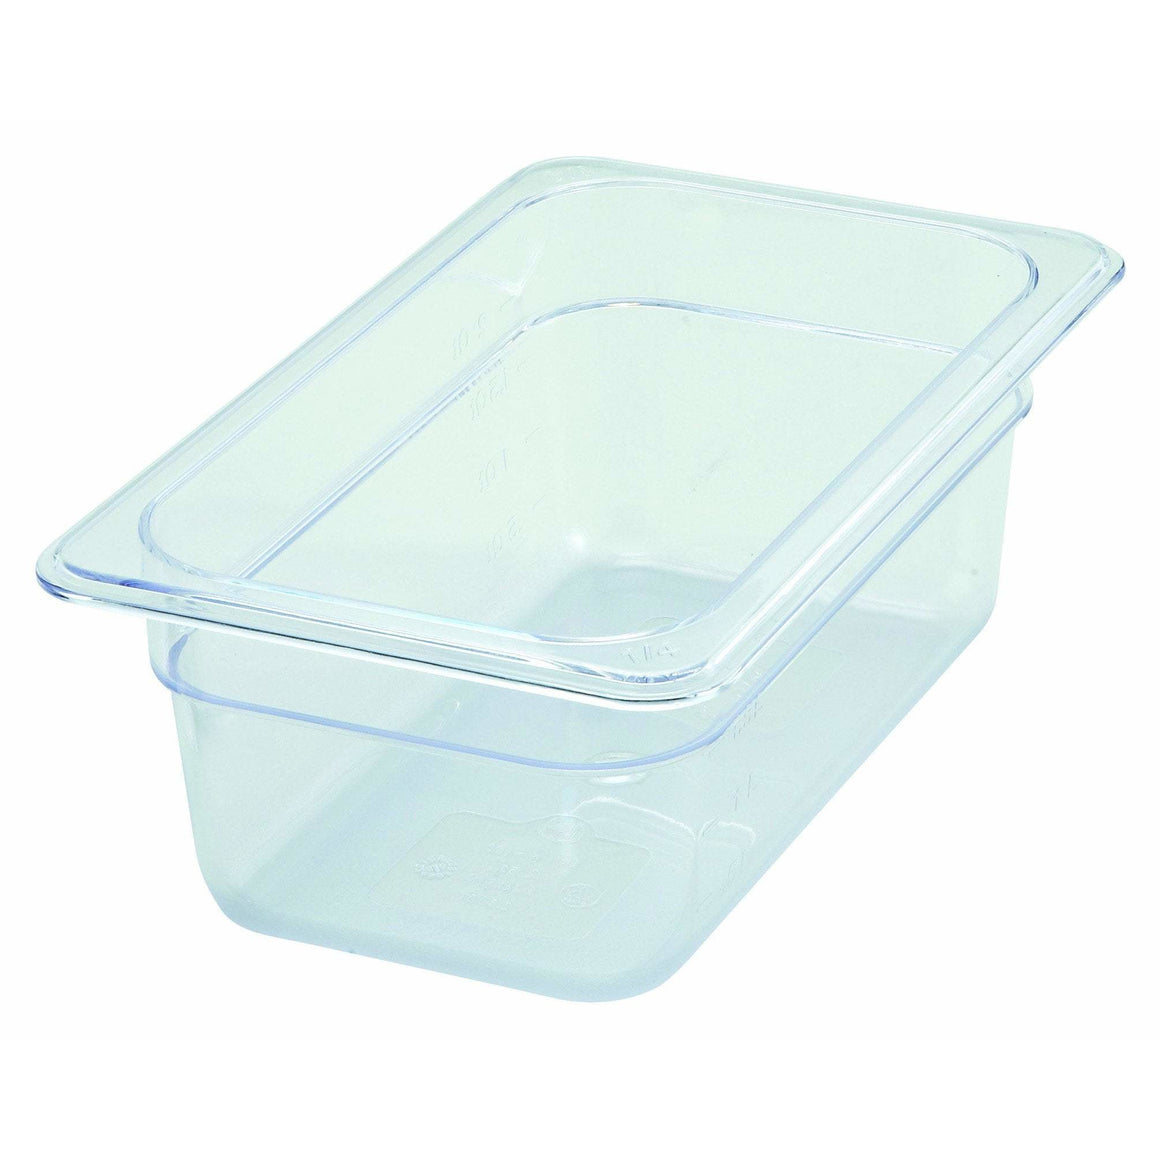 "Winco - SP7404 - PC Food Pan, 1/4 Size, 4"" - Food Storage"